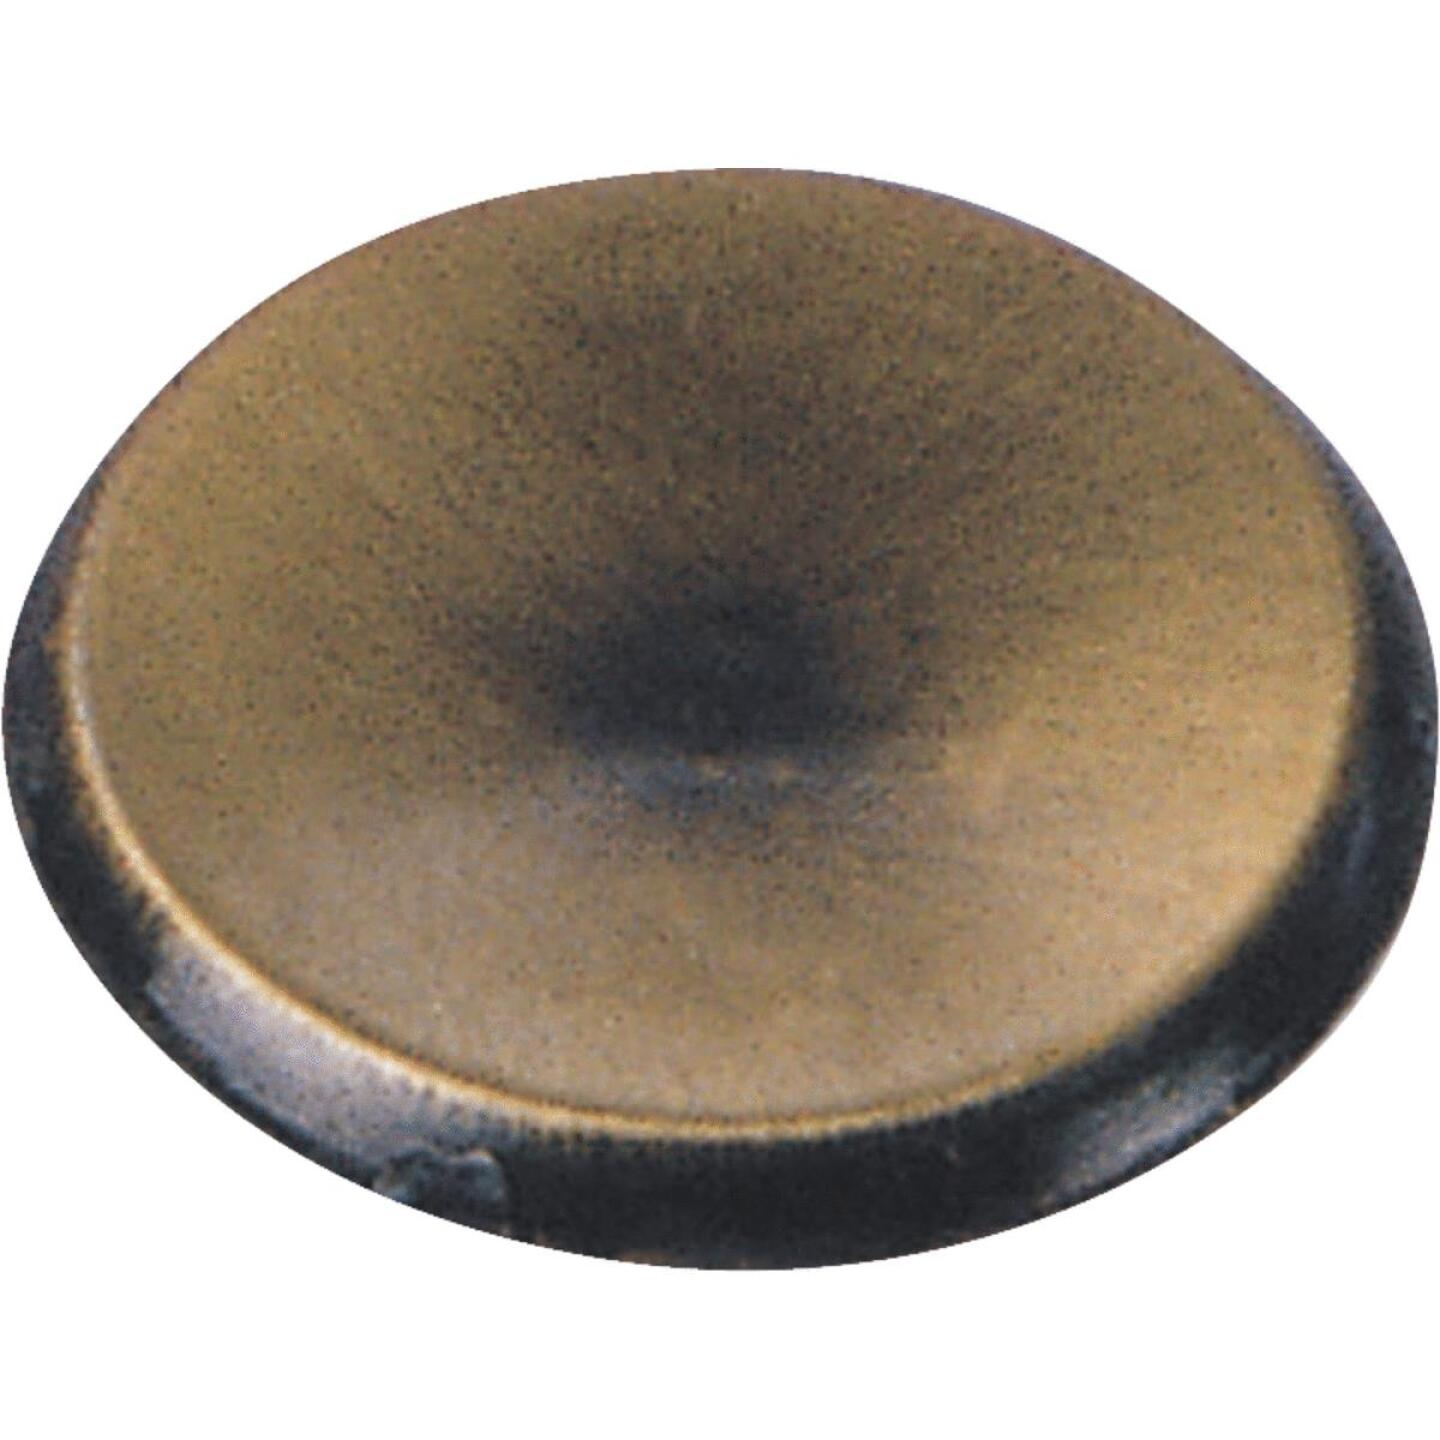 Laurey Antique Brass 1-1/2 In. Cabinet Knob Image 1